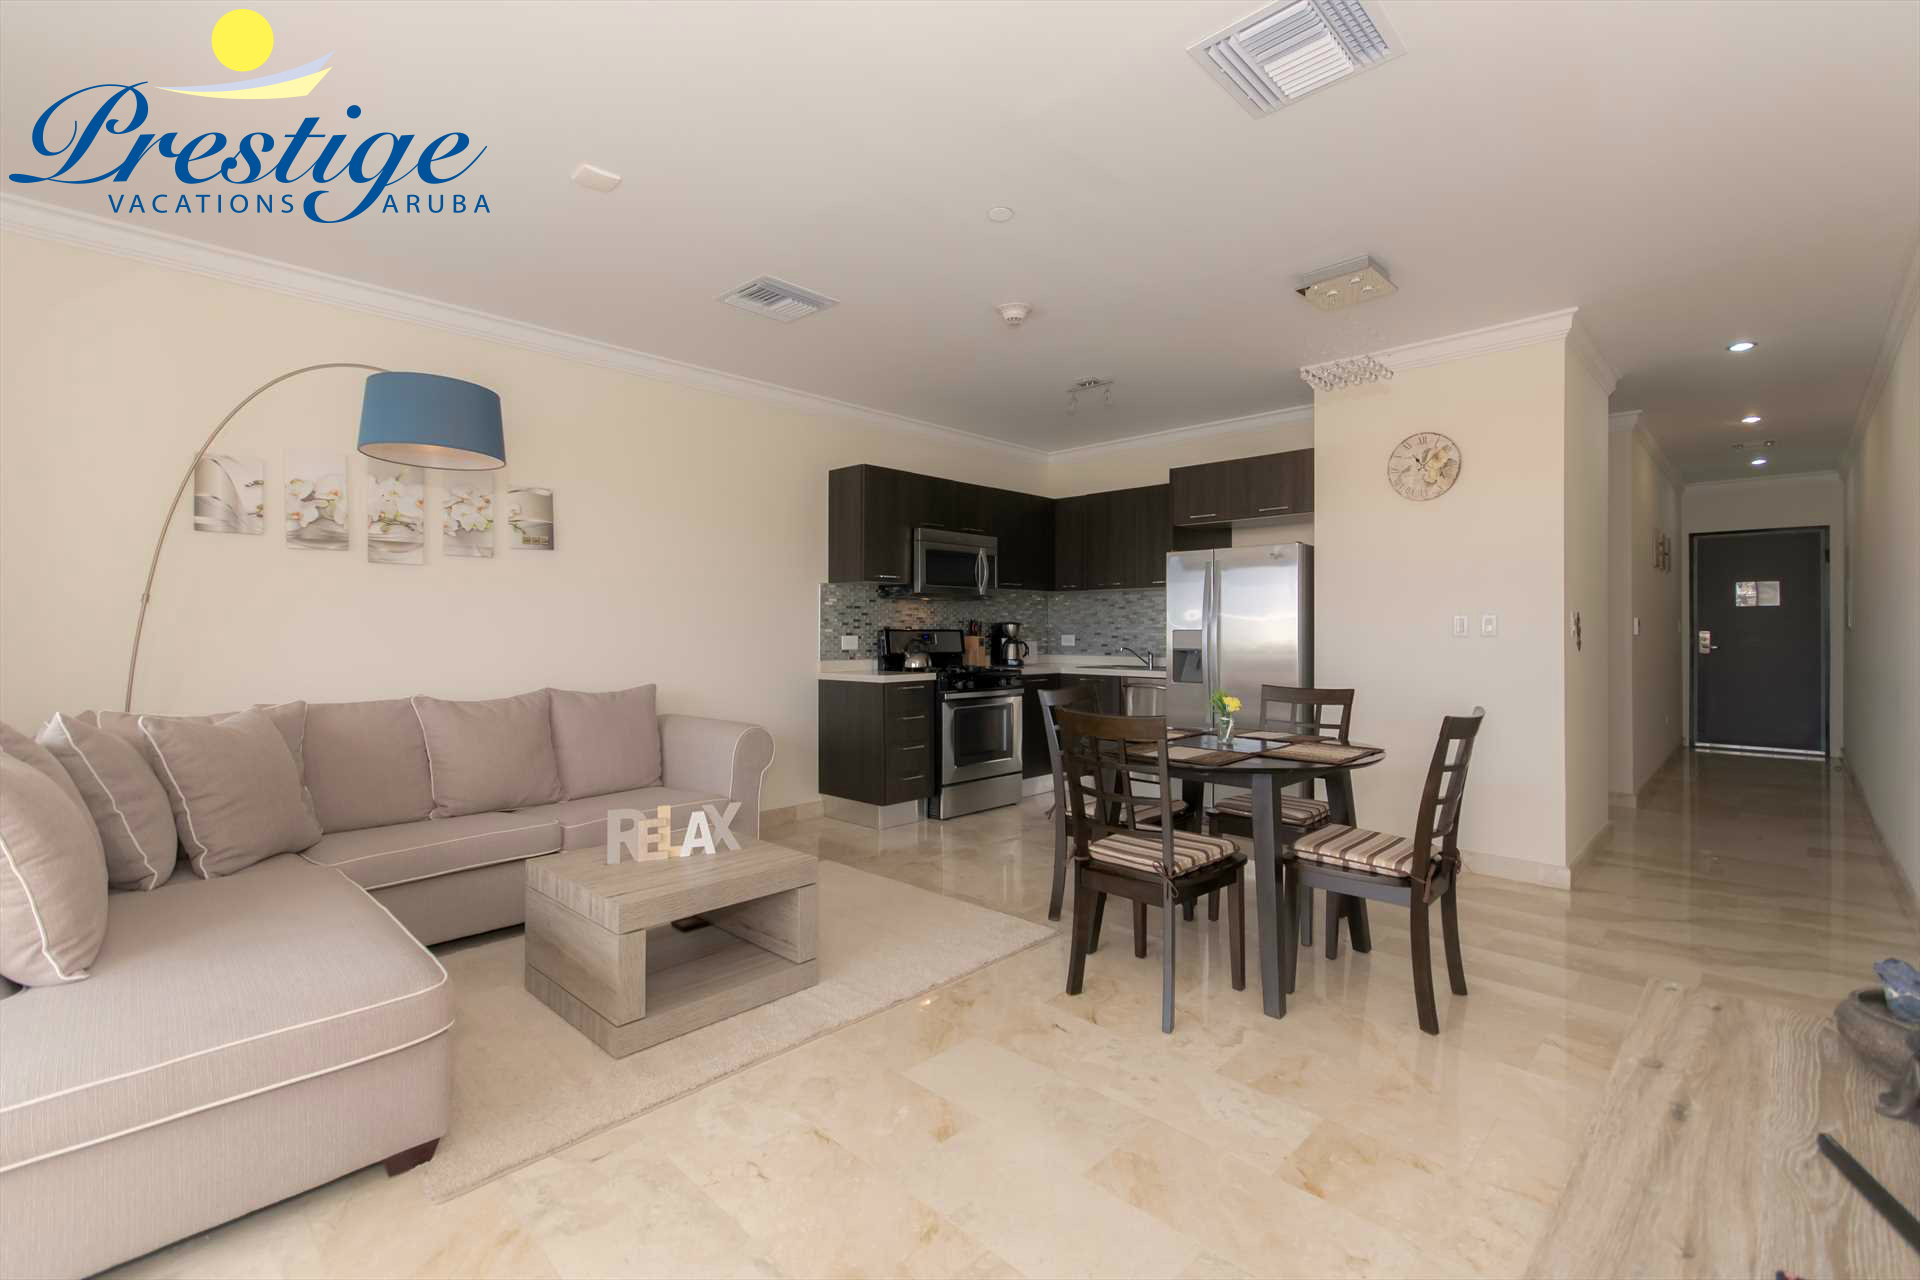 An open plan living area provides for plenty of space to truly enjoy your stay